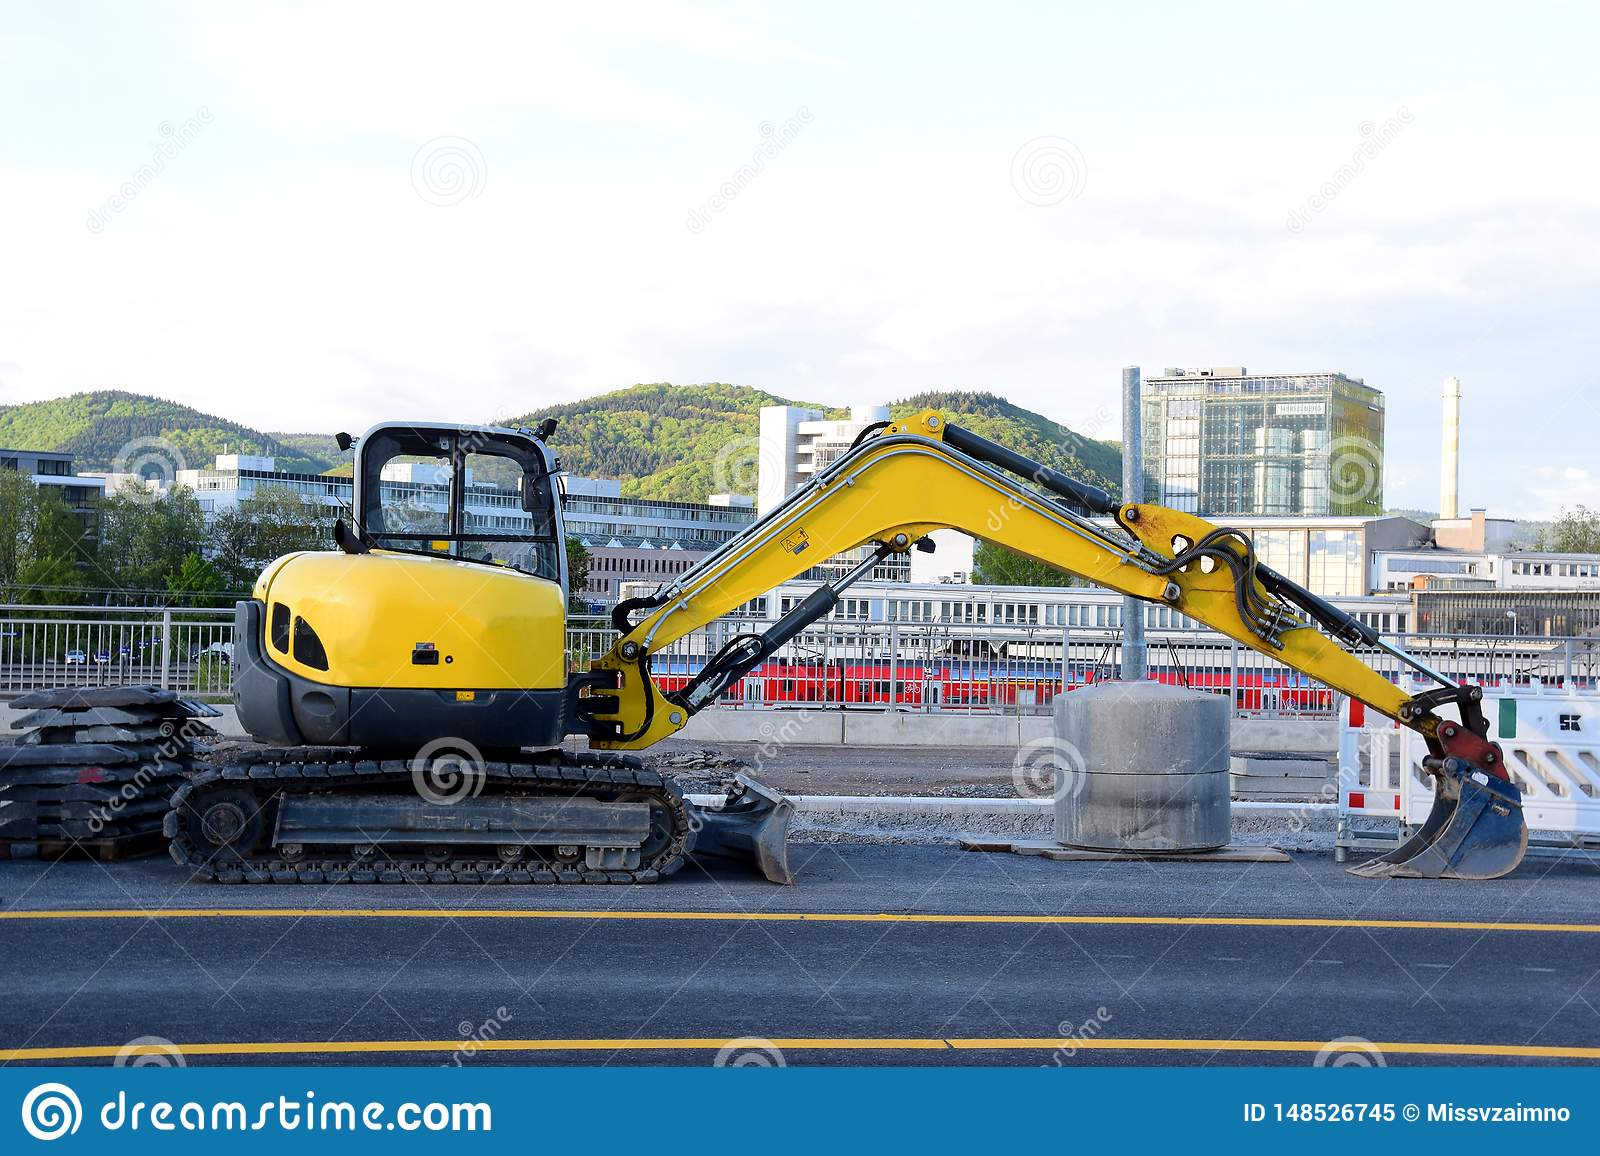 Excavator used for the reconstruction of the roadway in the city